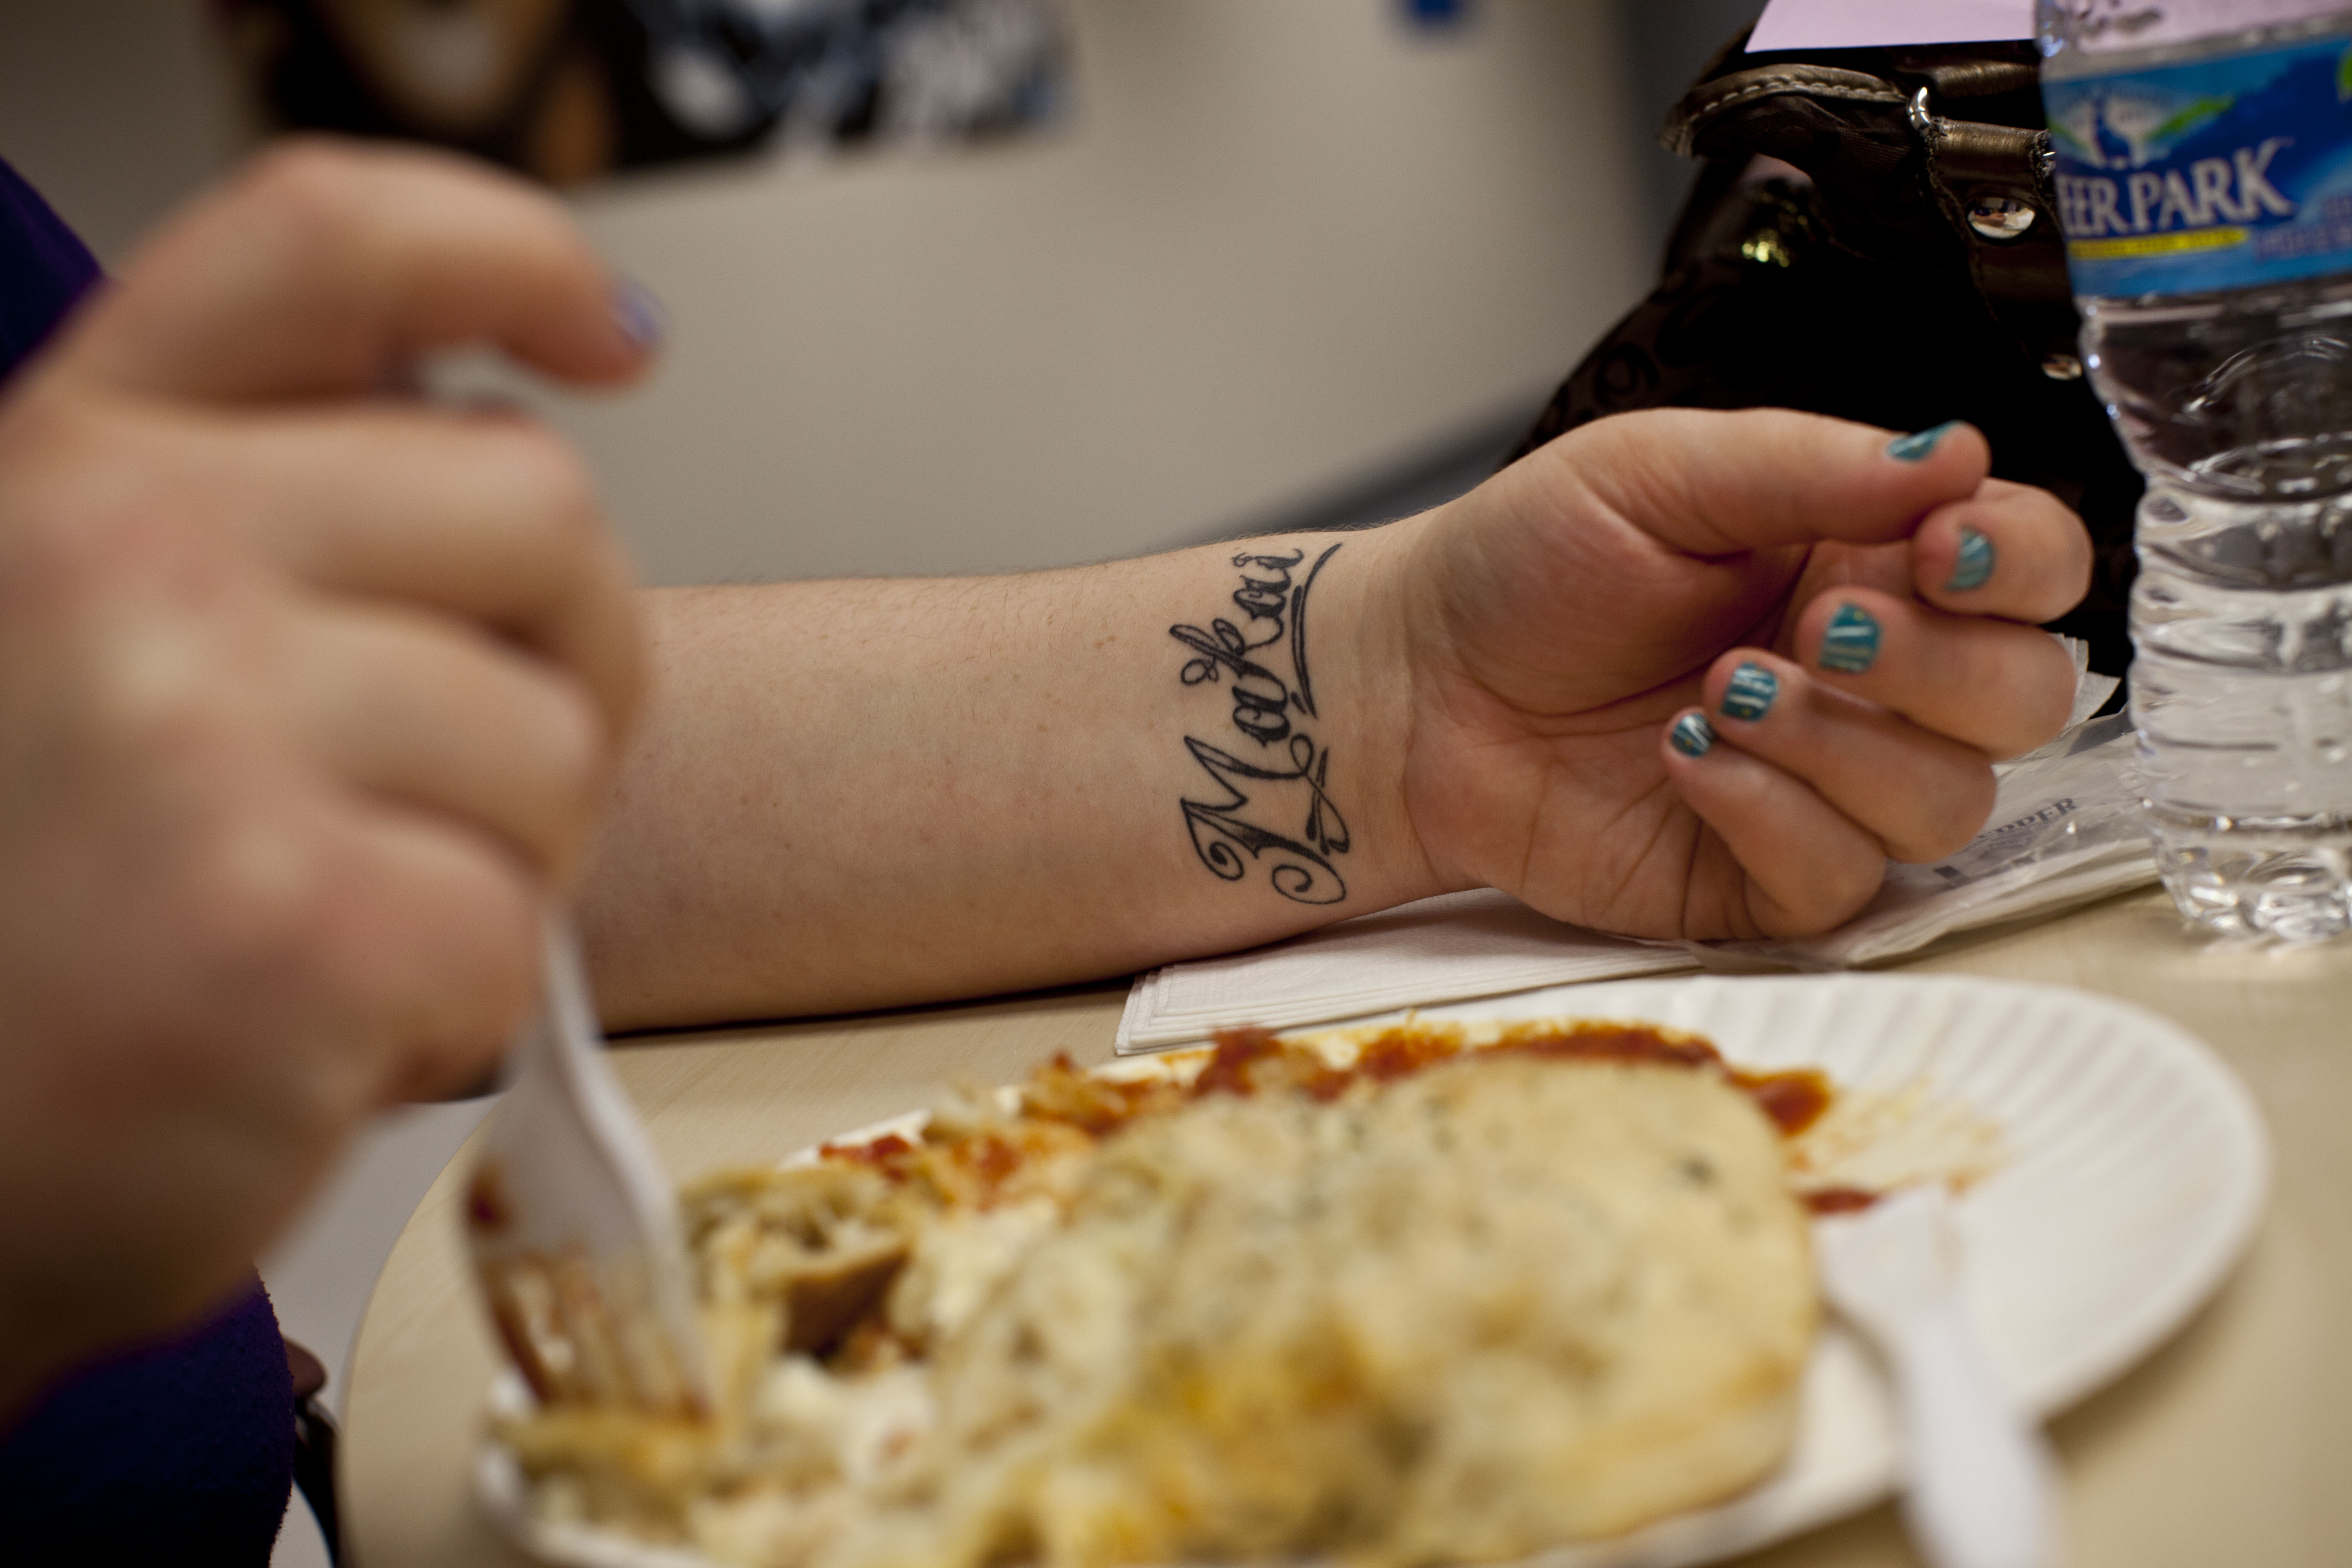 Stepp sports a tattoo of her younger son's name, Makai, on her wrist. I-LEAD, the nonprofit that runs her evening classes, provides dinner for its students.